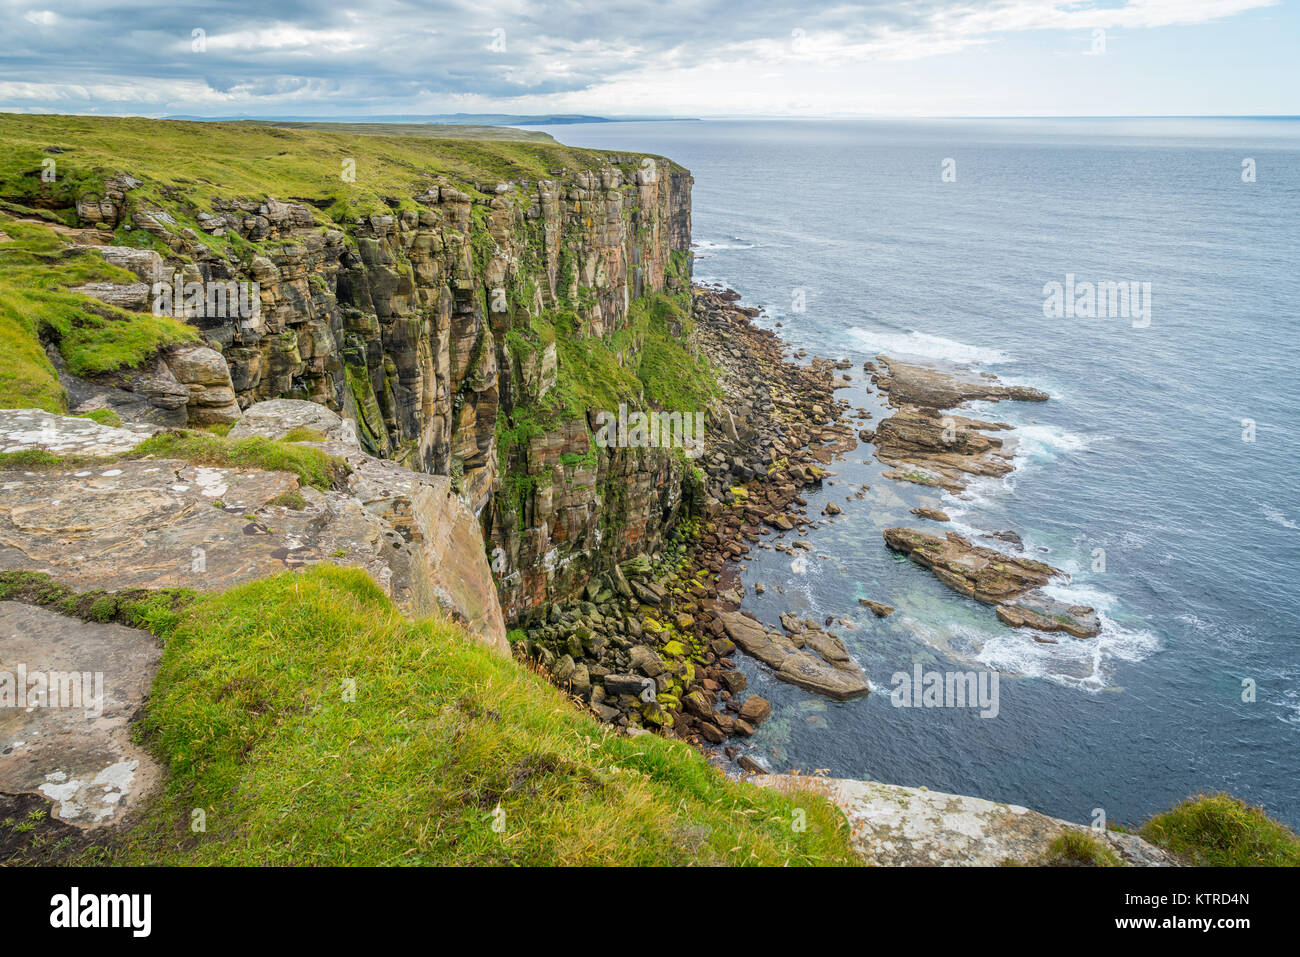 Scenic cliffs in Dunnet Head, in Caithness, on the north coast of Scotland, the most northerly point of the mainland - Stock Image